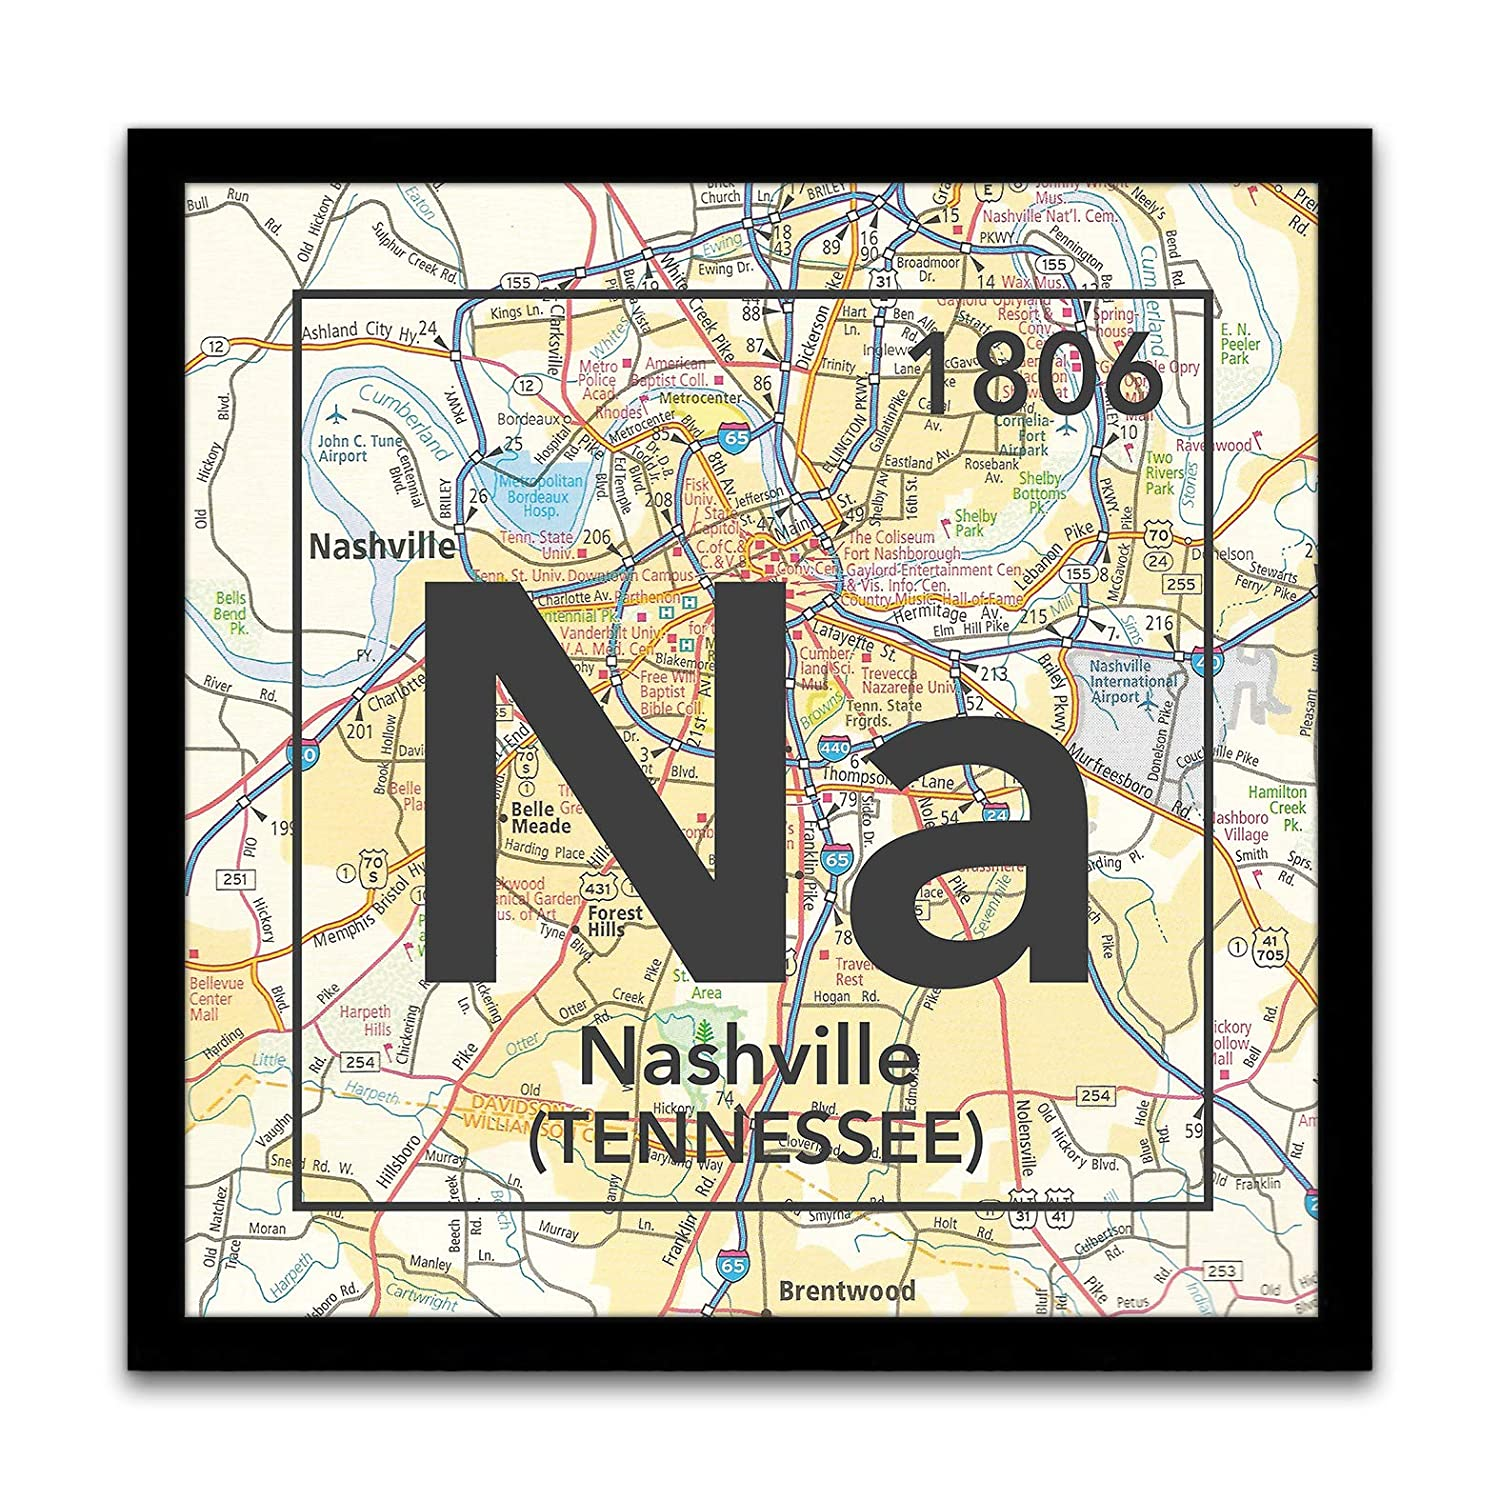 Na -Nashville Tennessee Vintage Periodic Chart Map Art Print, Unframed, Atlas Road Map Home & Wall Decor, Wedding - Housewarming Gift, 8x8 Inches